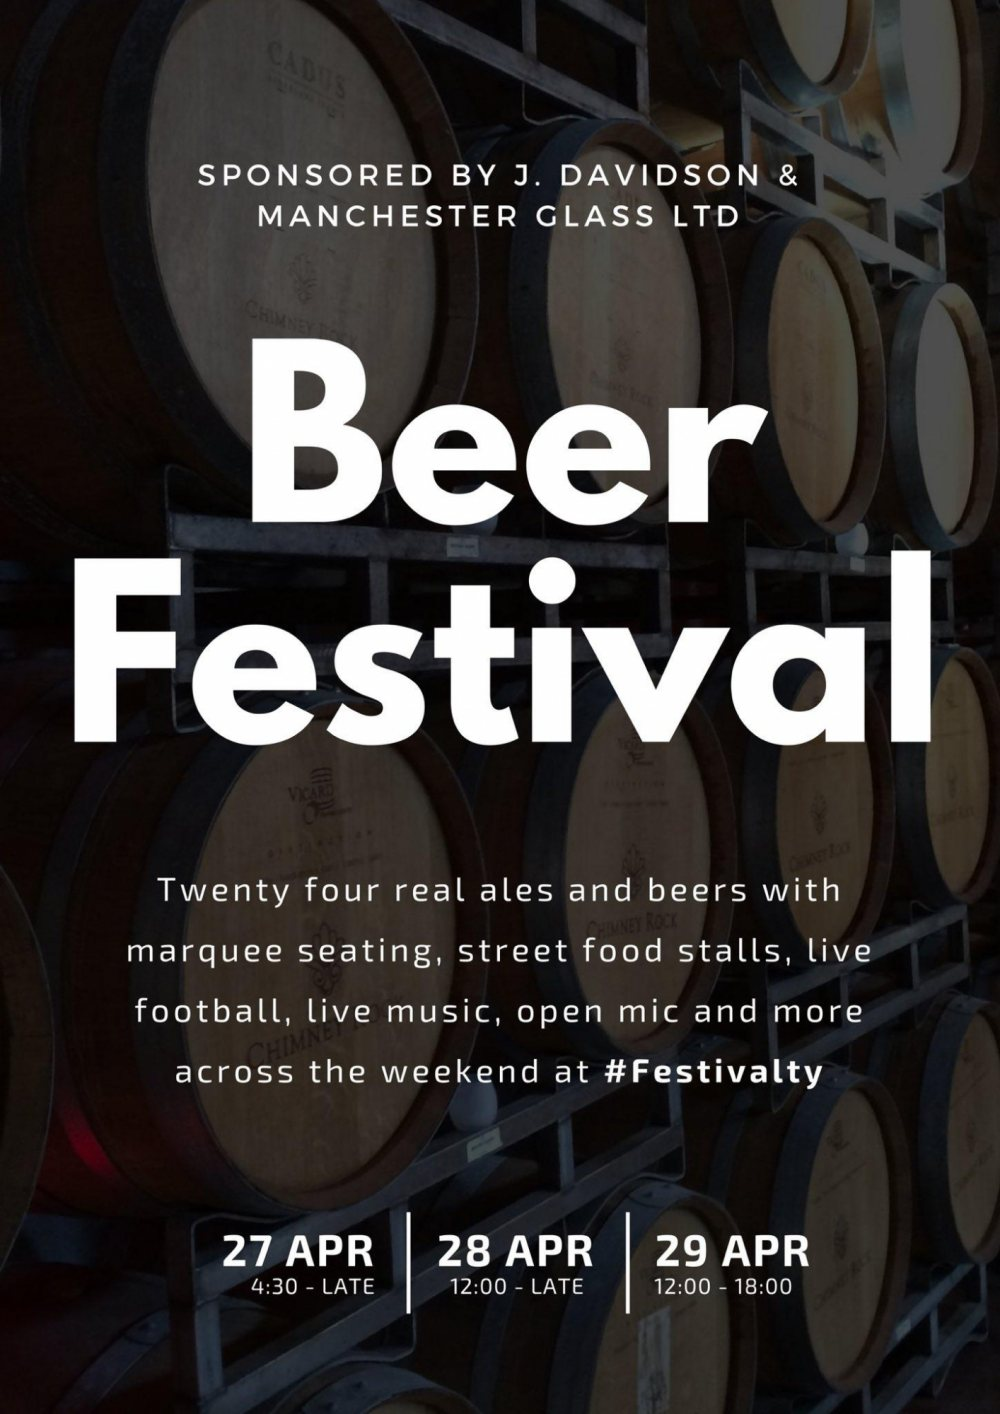 Altrincham FC Beer Festival is back better than ever